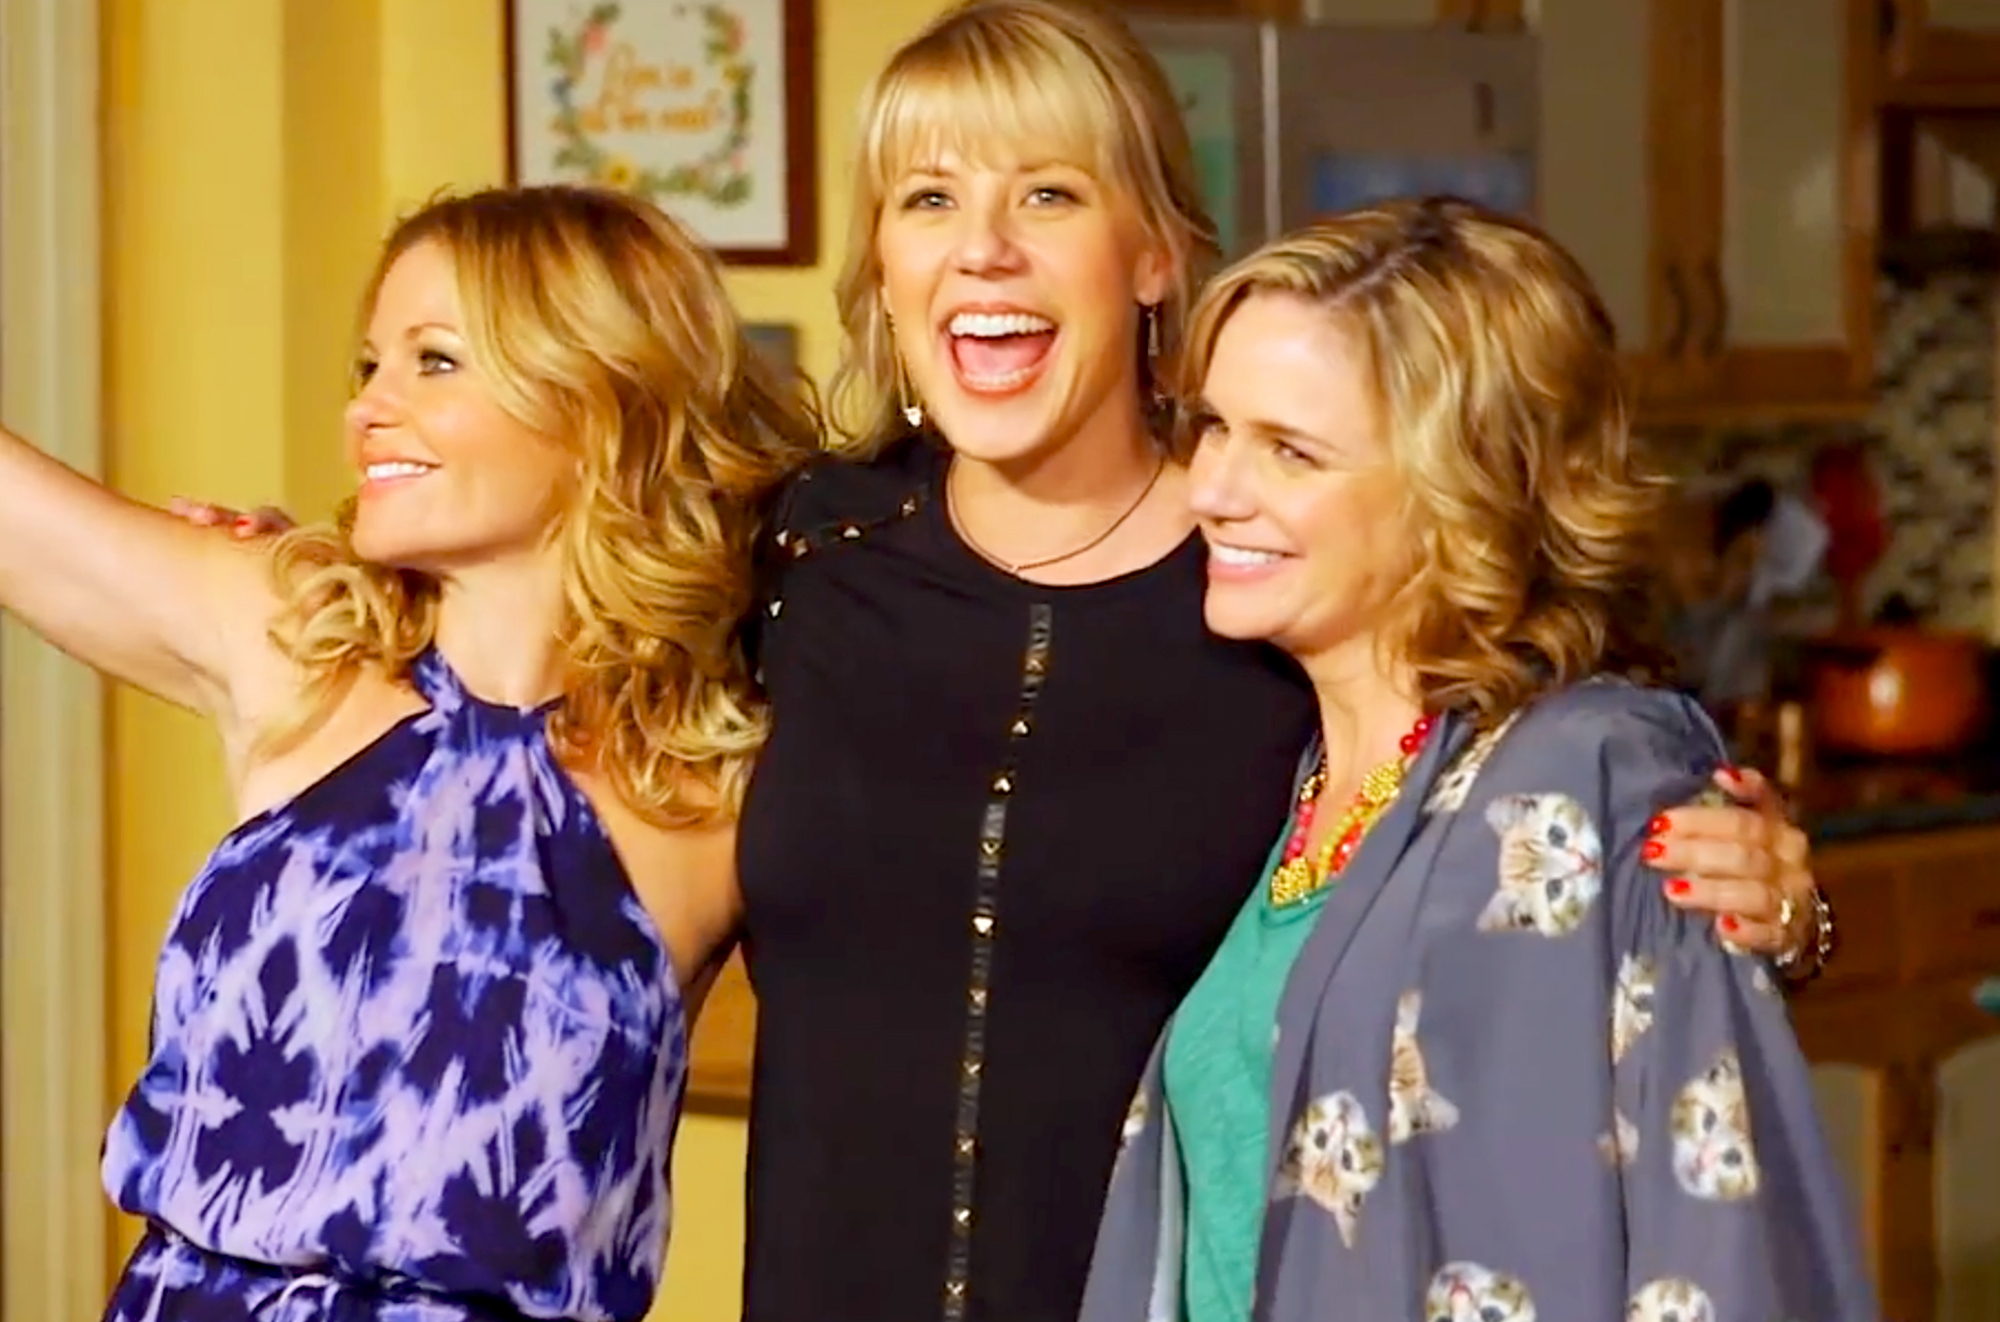 Candace Cameron Bure, Jodie Sweetin and Andrea Barber